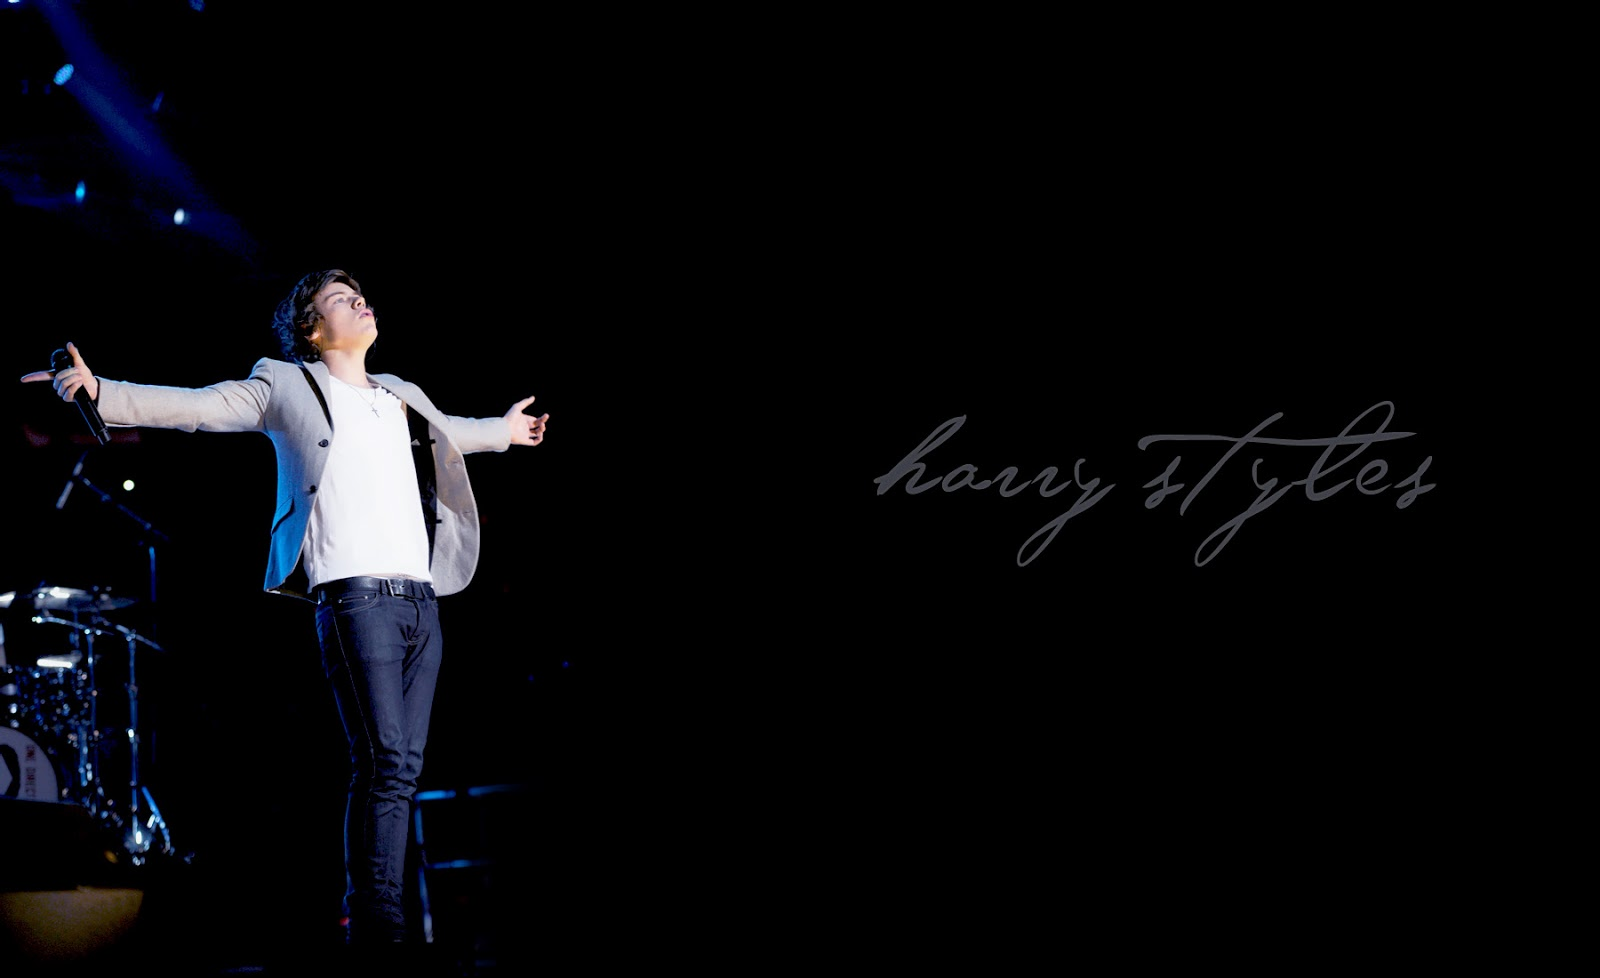 harry styles twitter backgrounds - photo #2